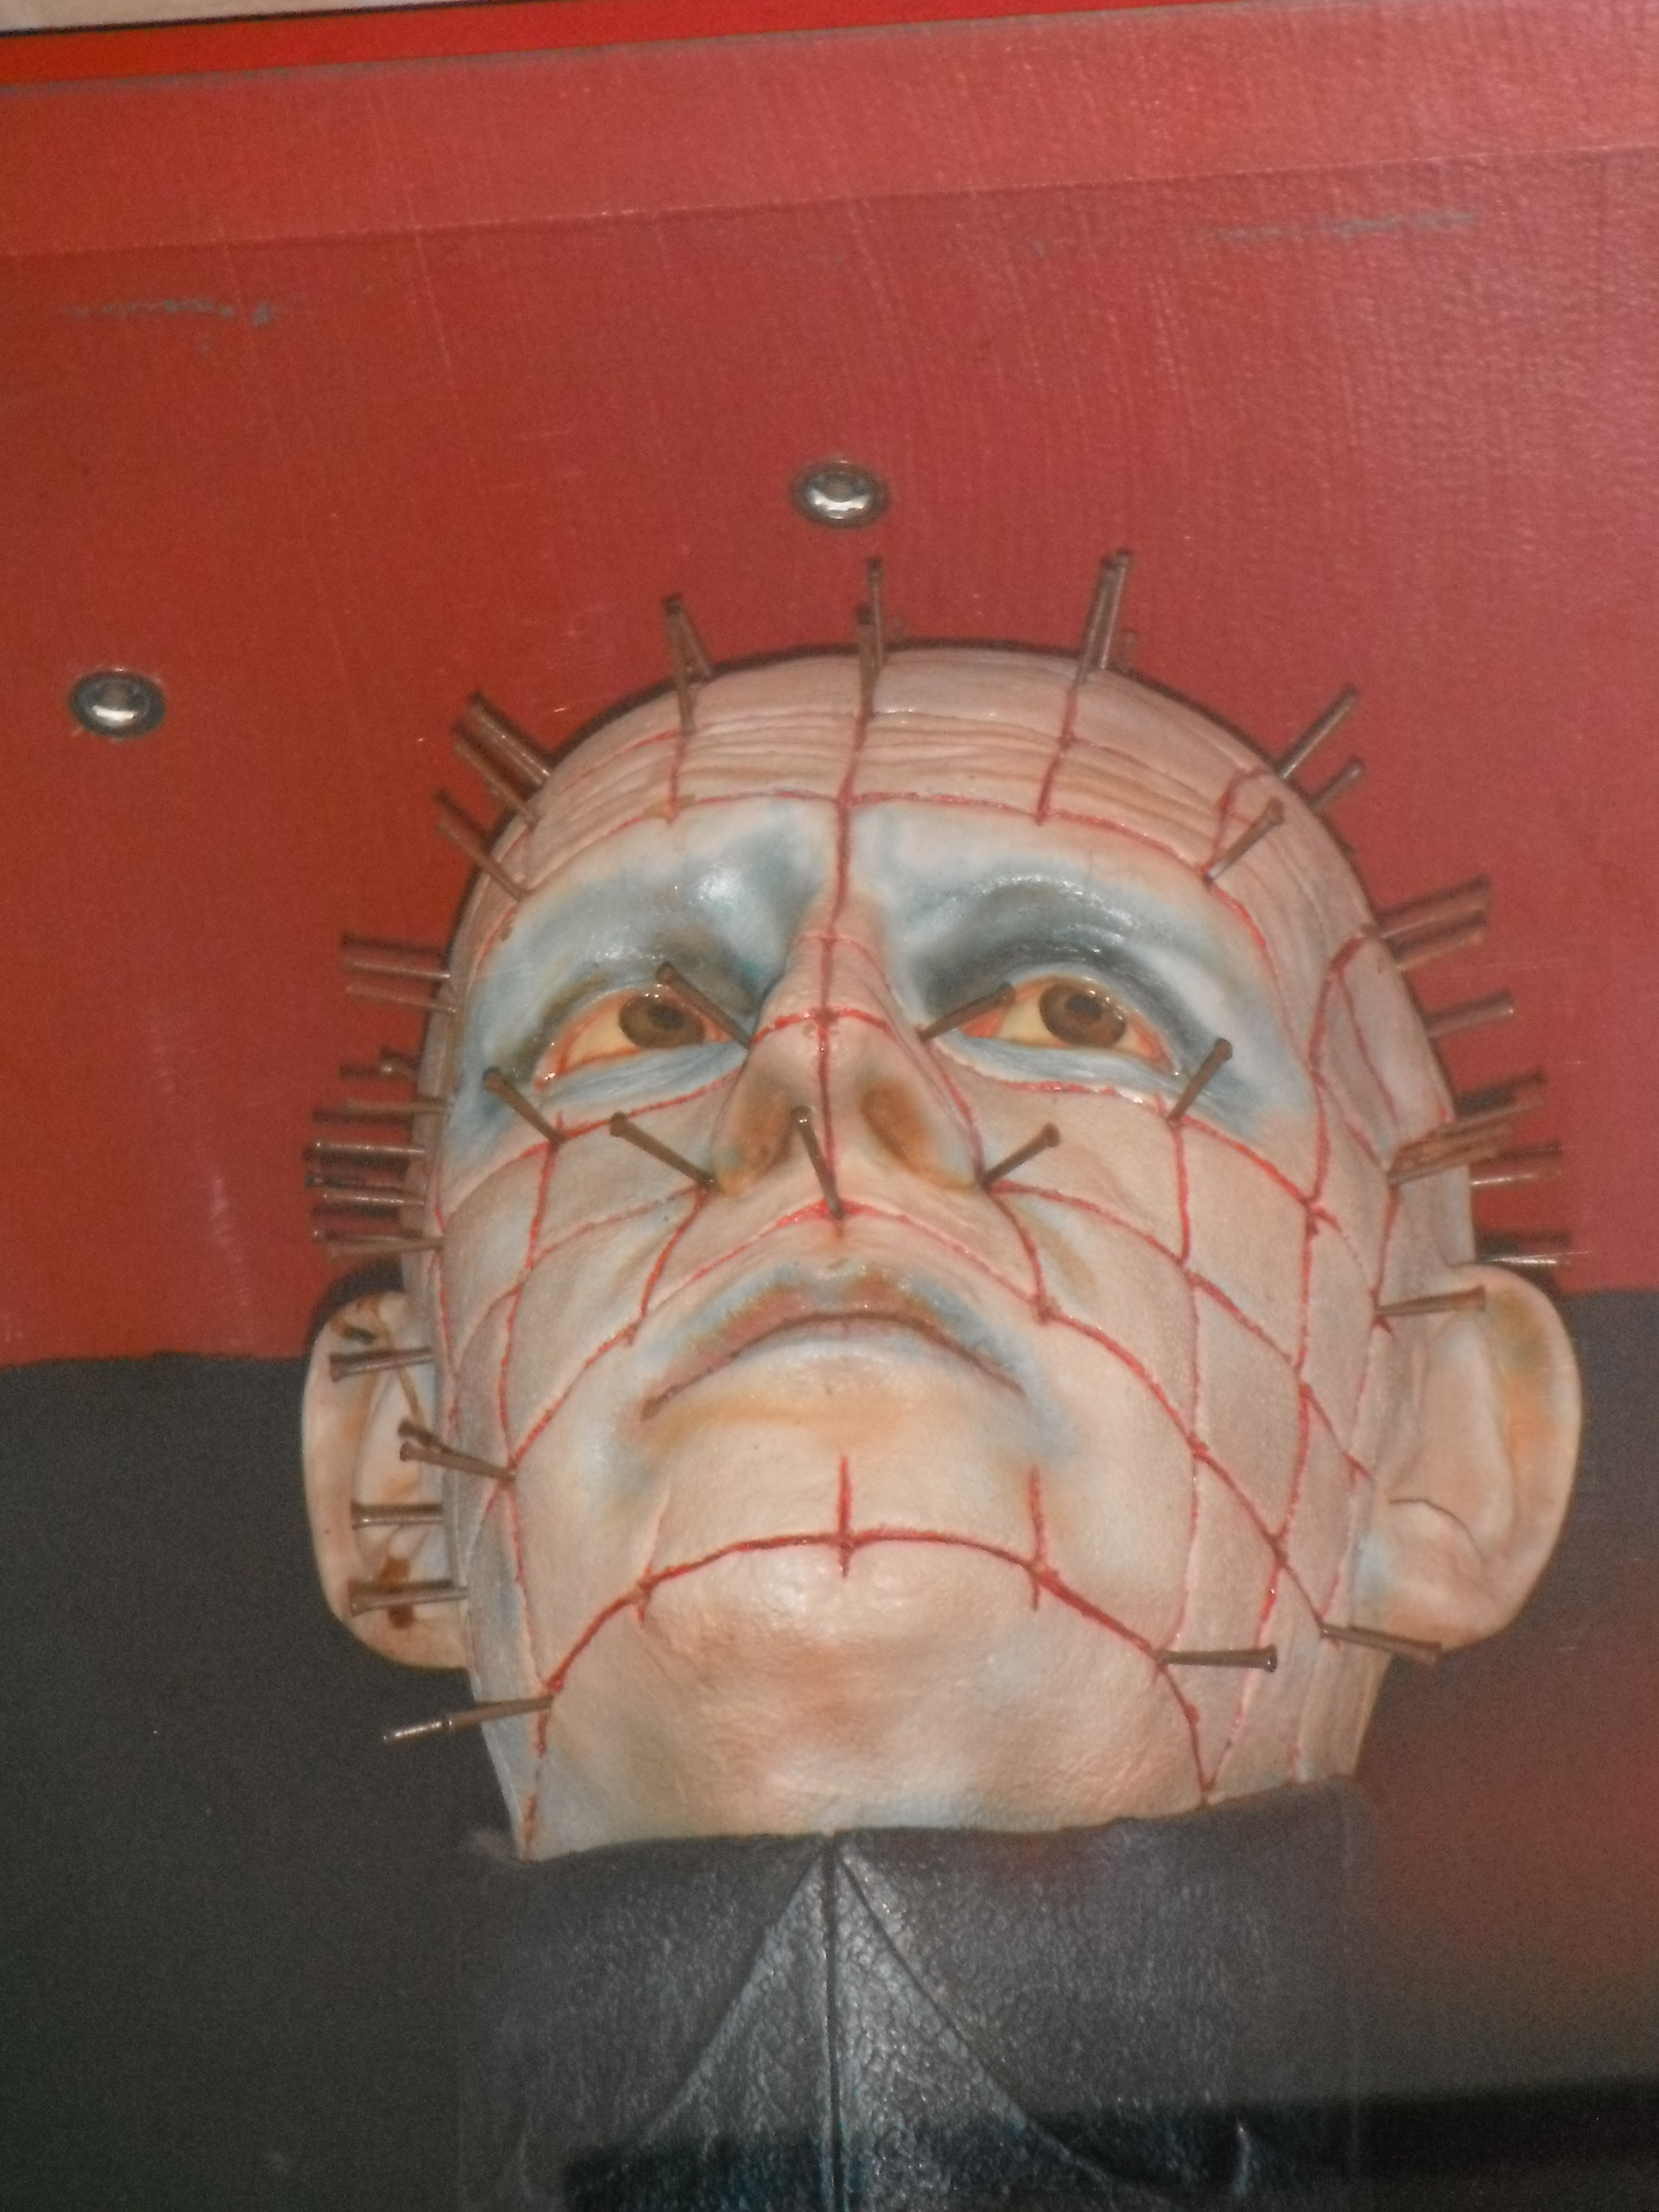 photo taken by me - Hellraiser Pinhead Mask, FAB Cafe, Manchester